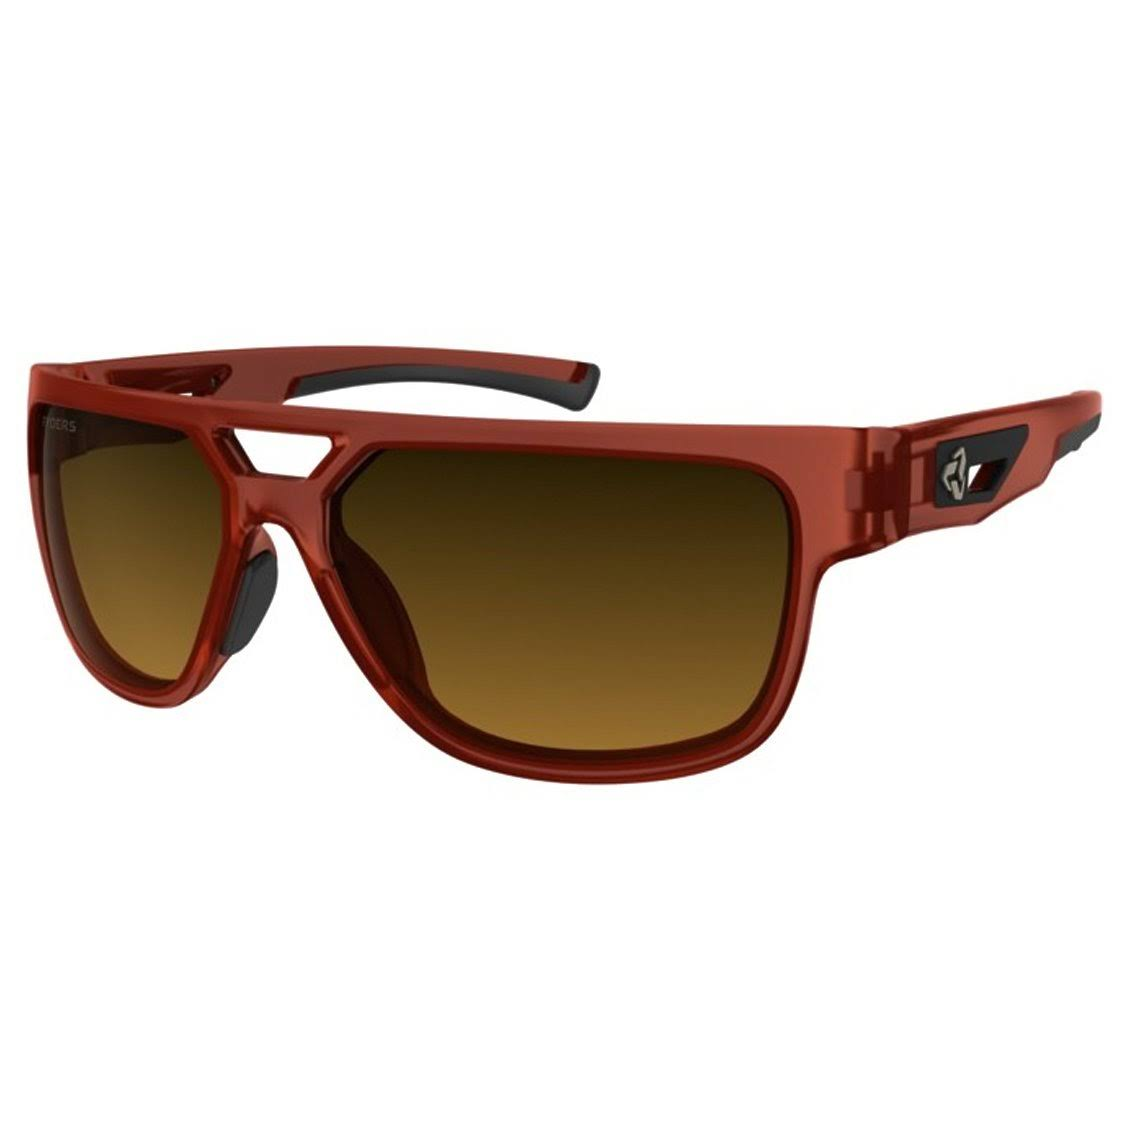 Ryders Eyewear Cakewalk Standard Sunglasses, Red